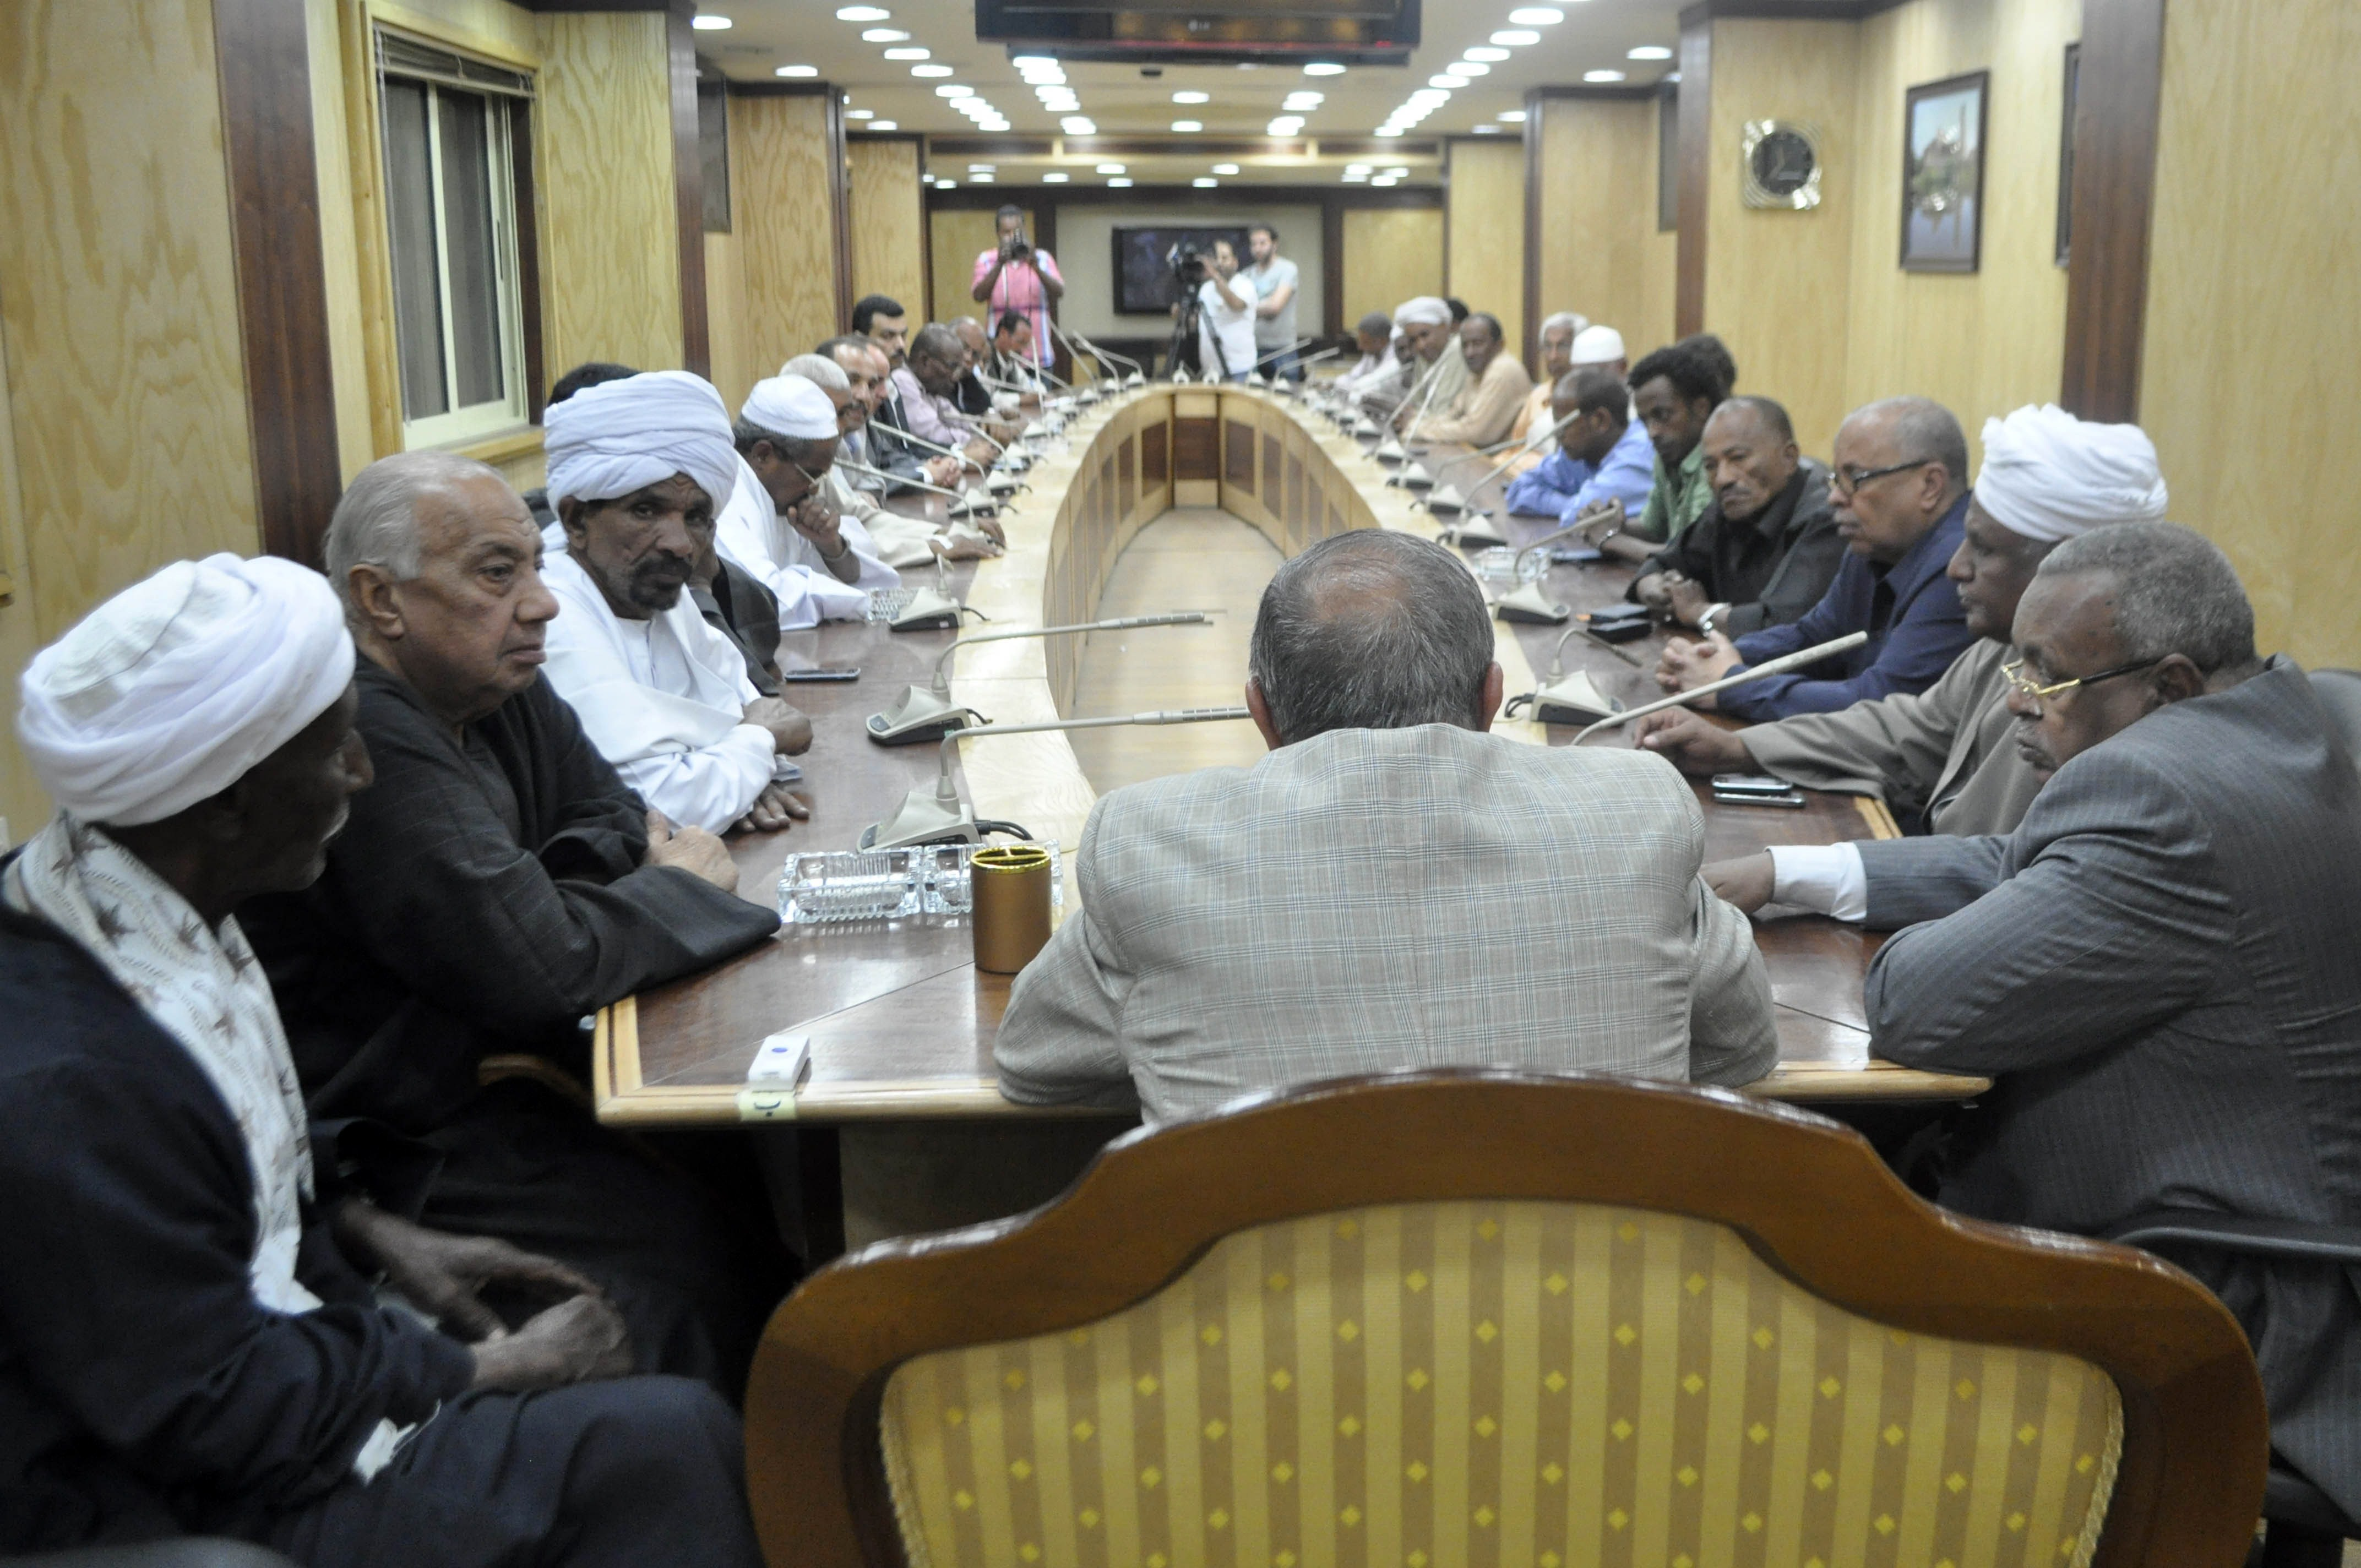 Egyptian Governor of the southern city of Aswan, Mostafa Yousry Attalah (C) leads a meeting gathering officials and representatives of the Bani Hilal, an Arab tribe, and the Dabudiya, a Nubian family following fighting between the two groups on April 7, 2014 at Aswan's governorate headquarters. At least two people were killed in renewed tribal clashes, after 48 hours of violence that left 23 dead, security officials said. AFP PHOTO / RADWAN EL-NAJAR